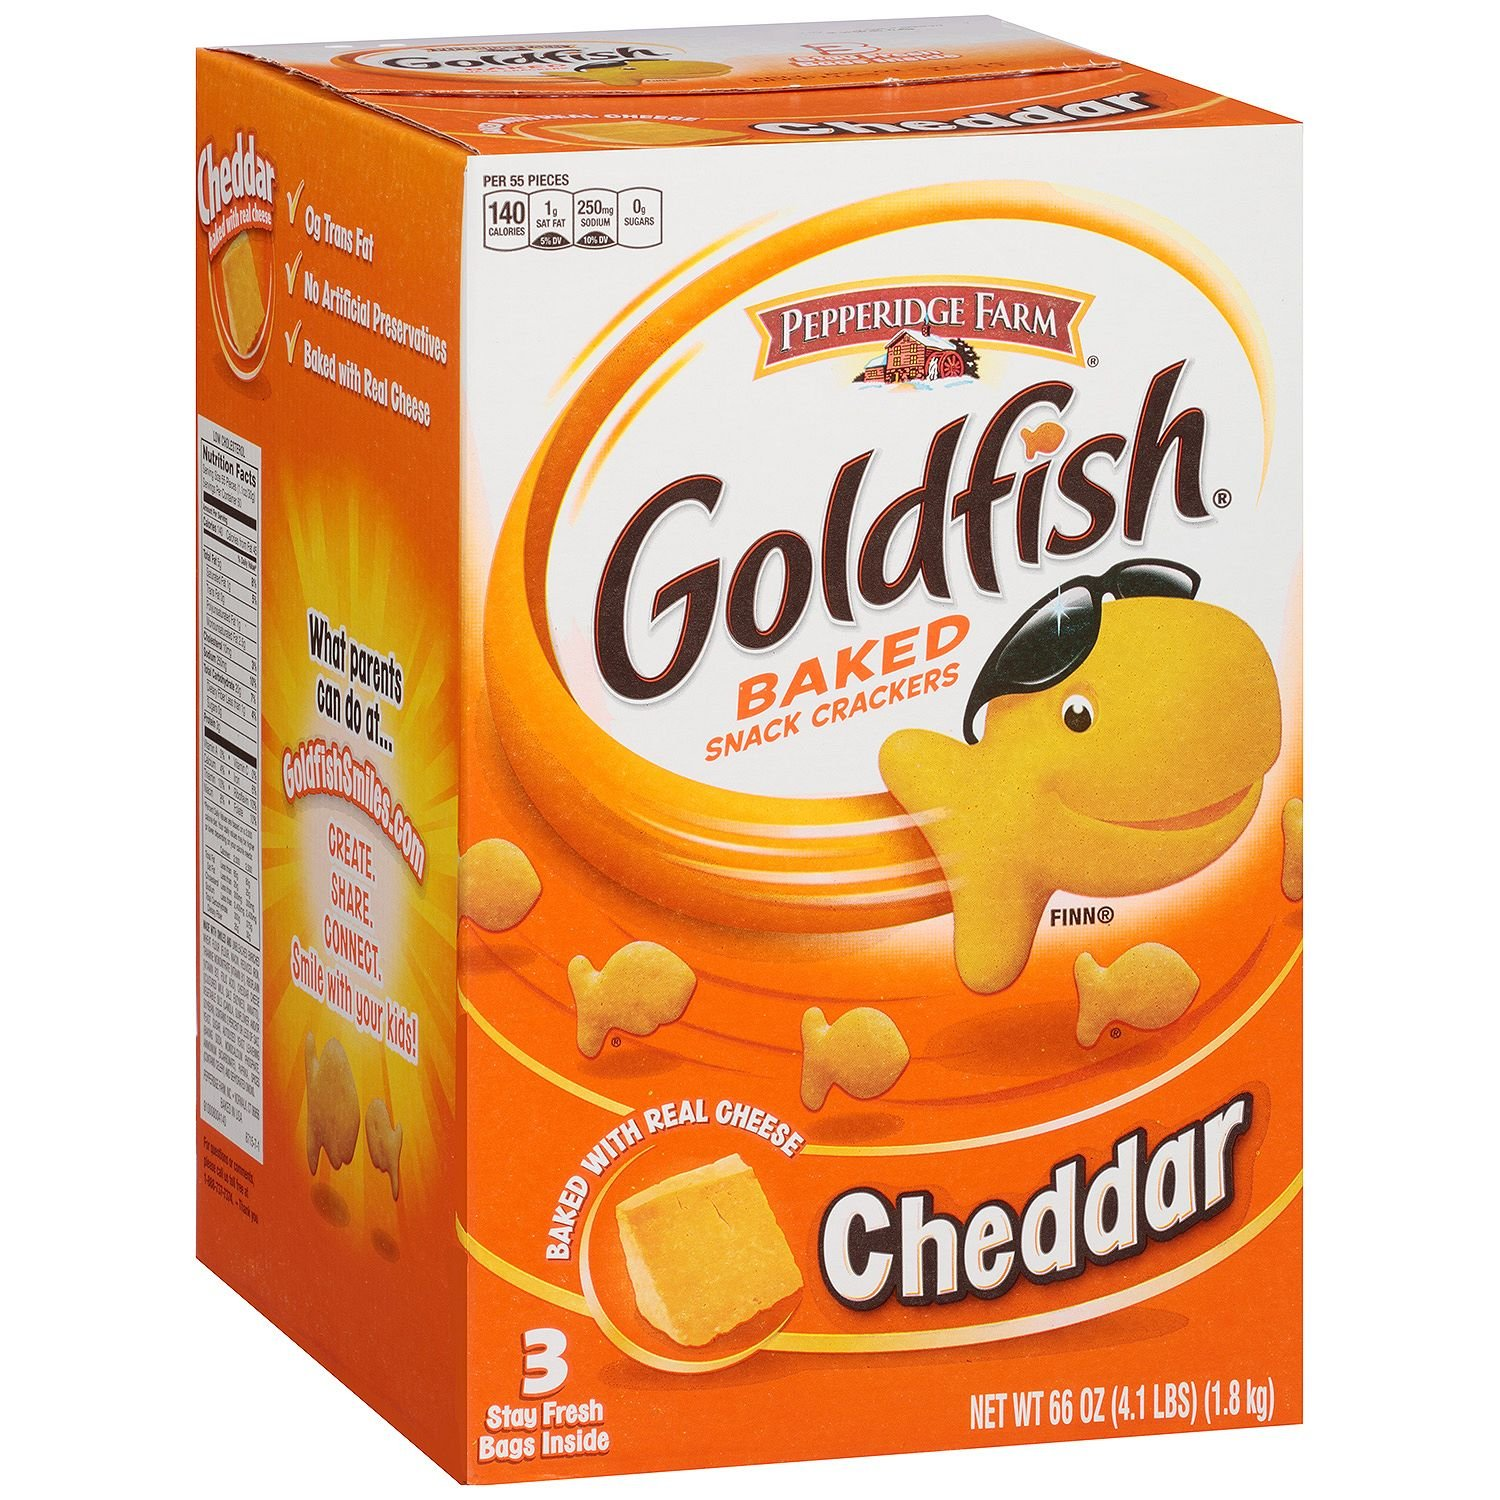 Pepperidge Farm store Goldfish Cheddar Baked Crackers oz. 66 Snack Max 74% OFF 3